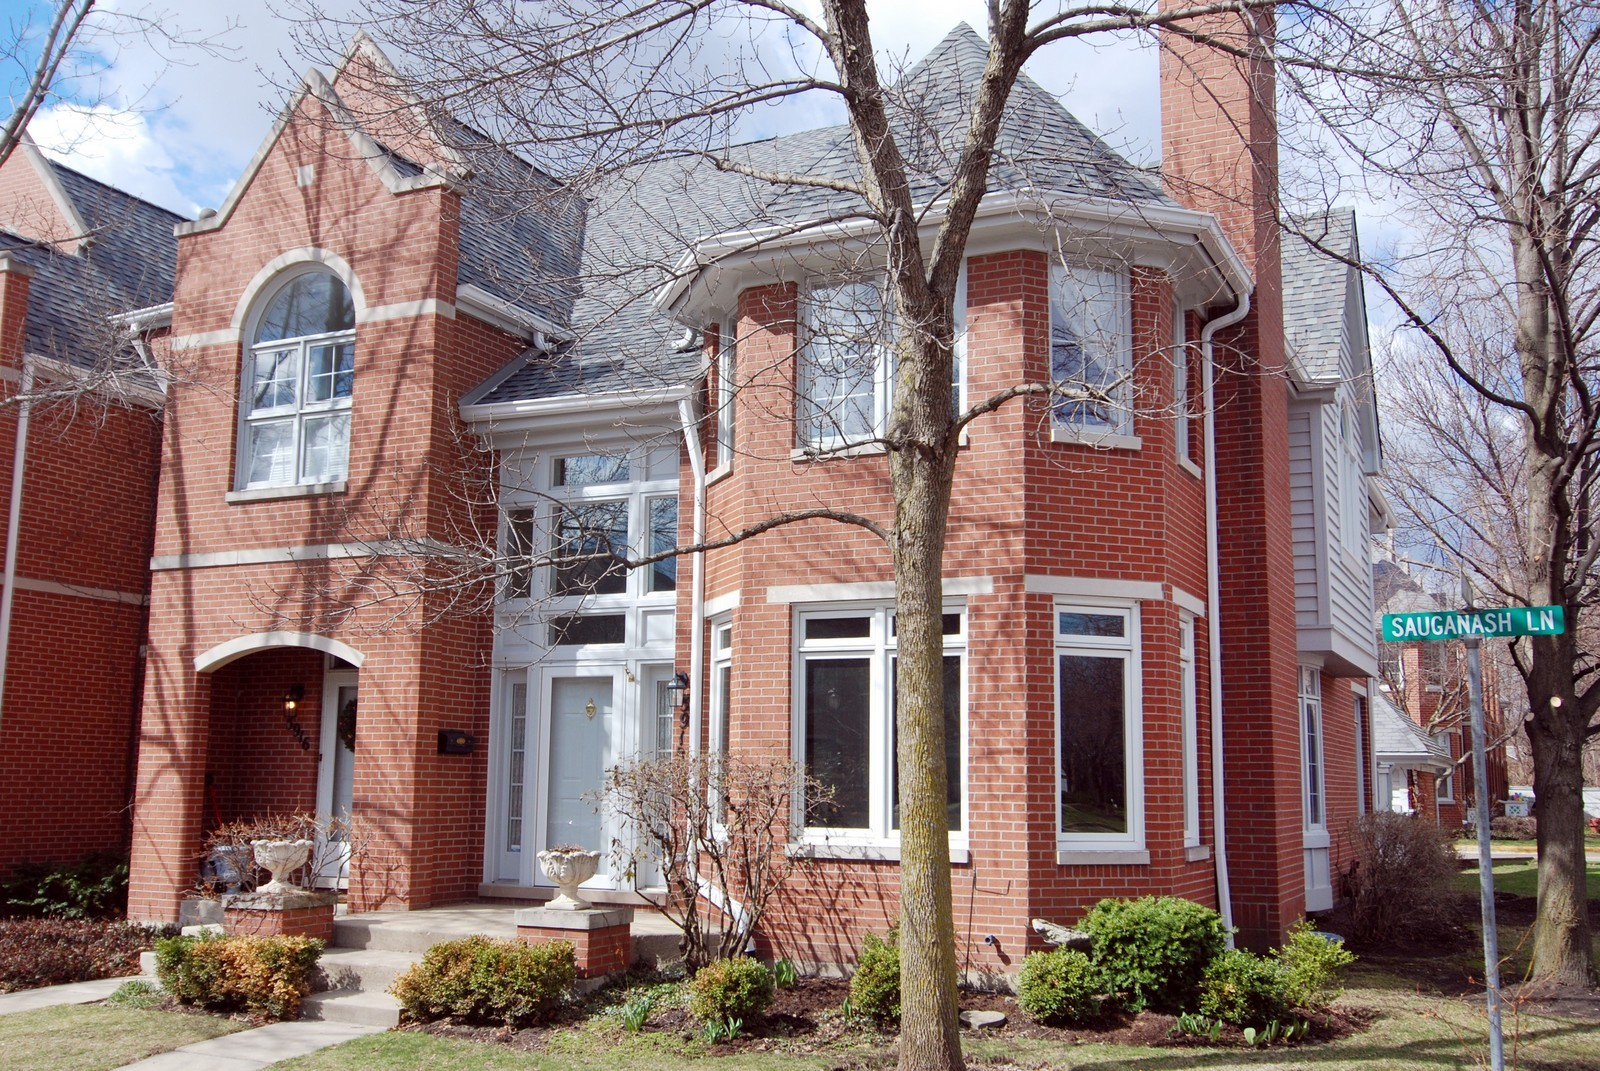 Real Estate Photography - 5918 N Sauganash Ln, Chicago, IL, 60647 - Front View